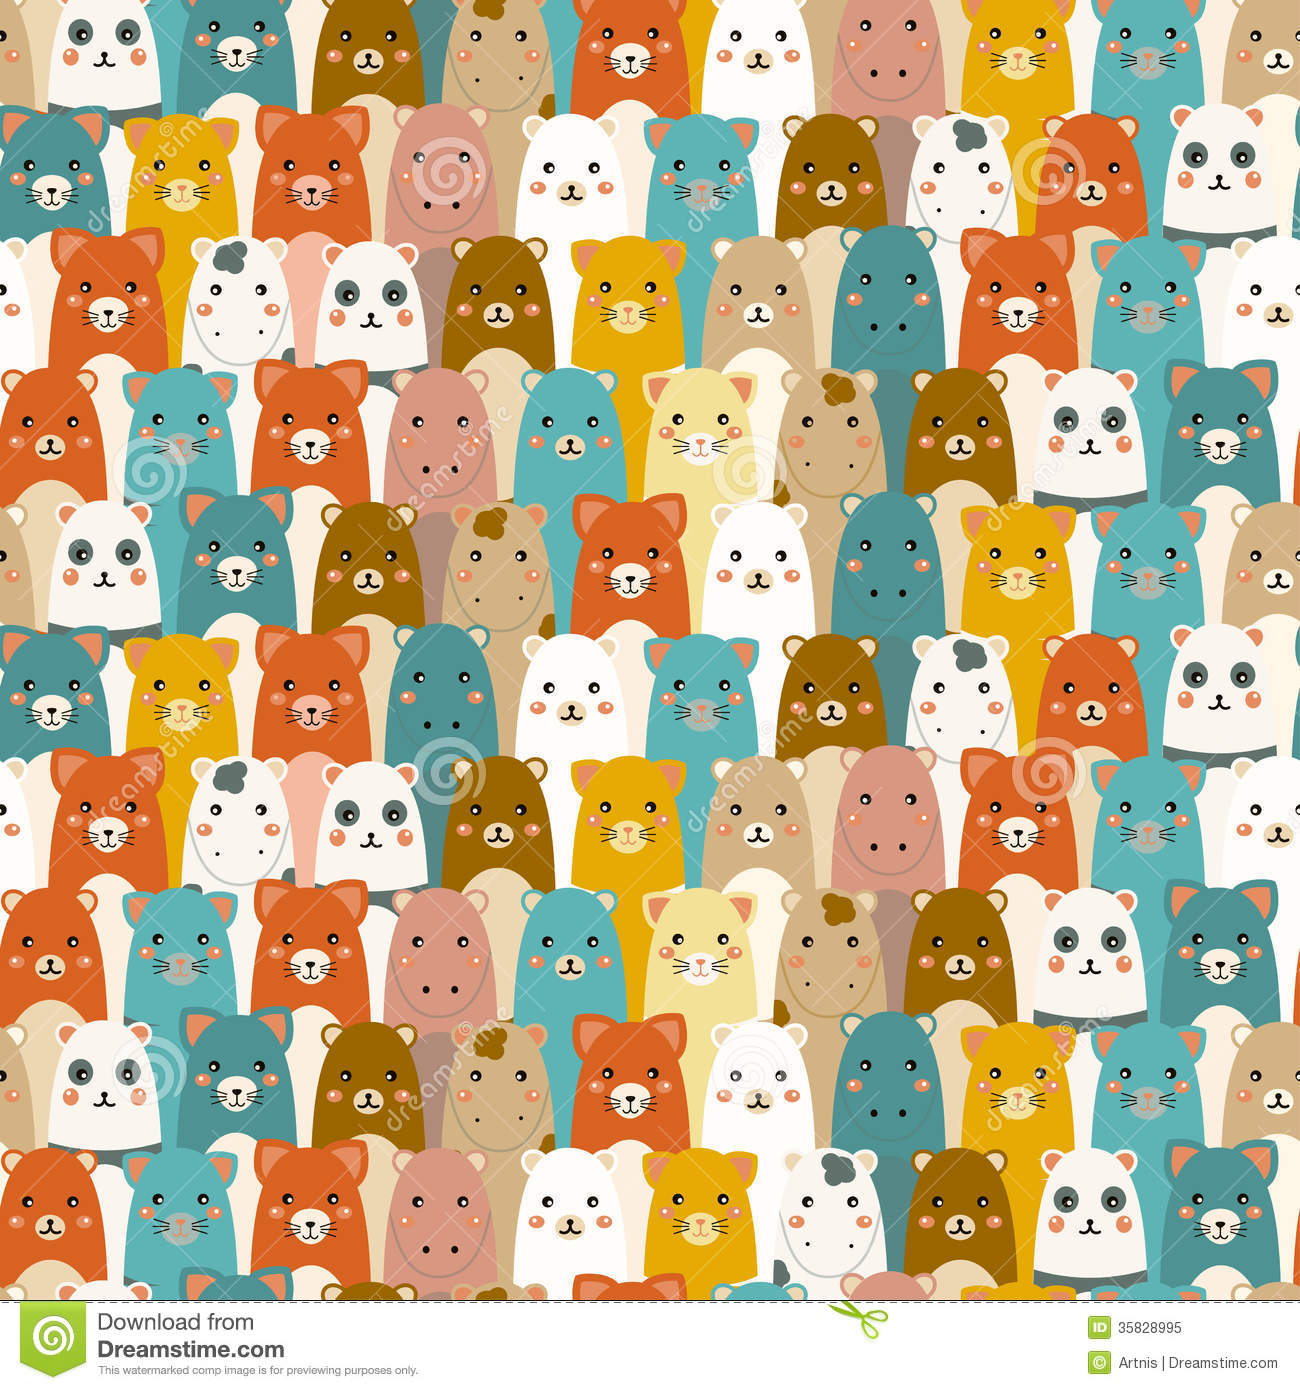 Cute Baby Animals Wallpaper Icon Seamless Pattern With Cartoon Animals Royalty Free Stock